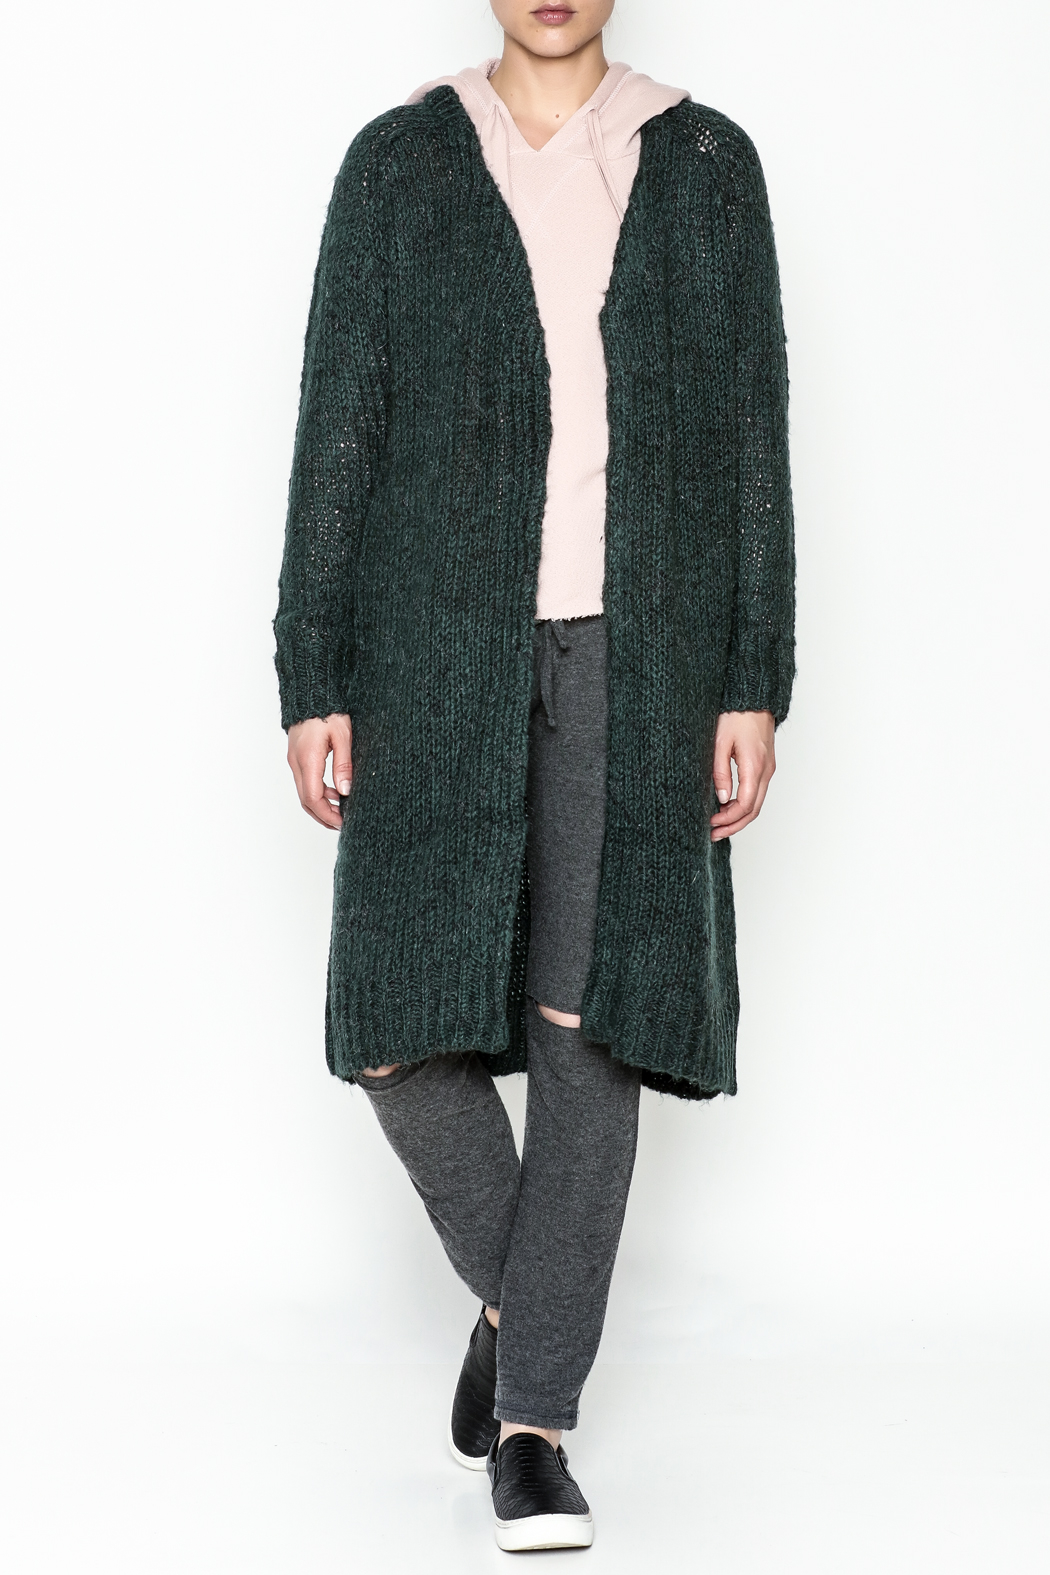 Noisy May Long Green Cardigan - Front Cropped Image